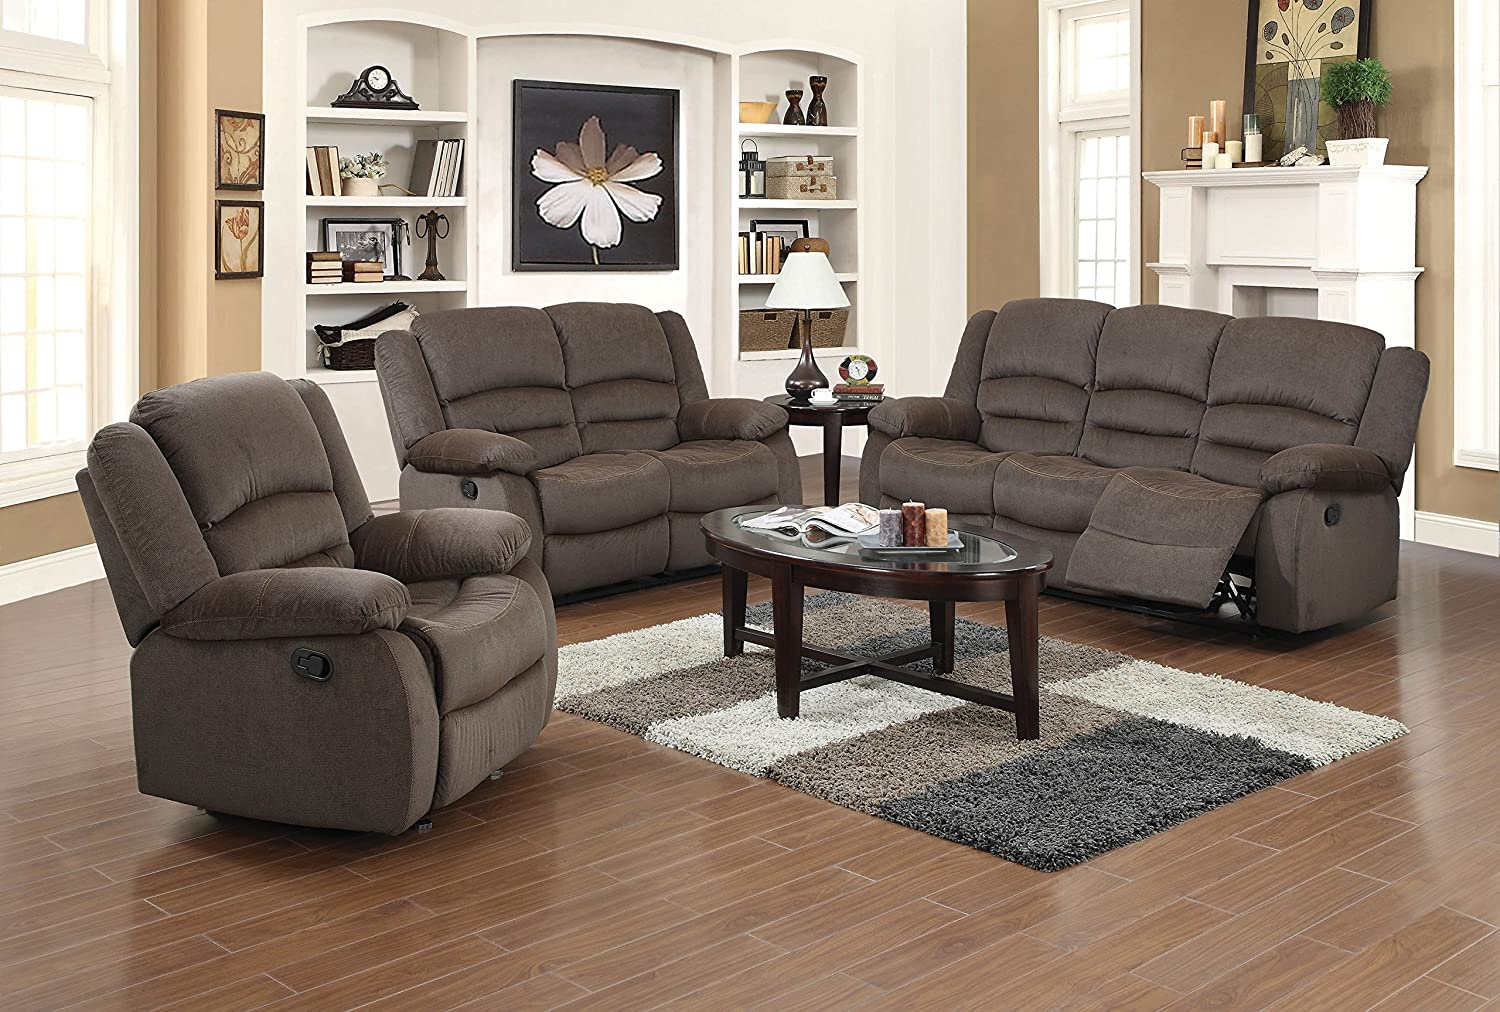 3 Piece Living Room Sofa Set: Sofa And Loveseat Sets Under 500